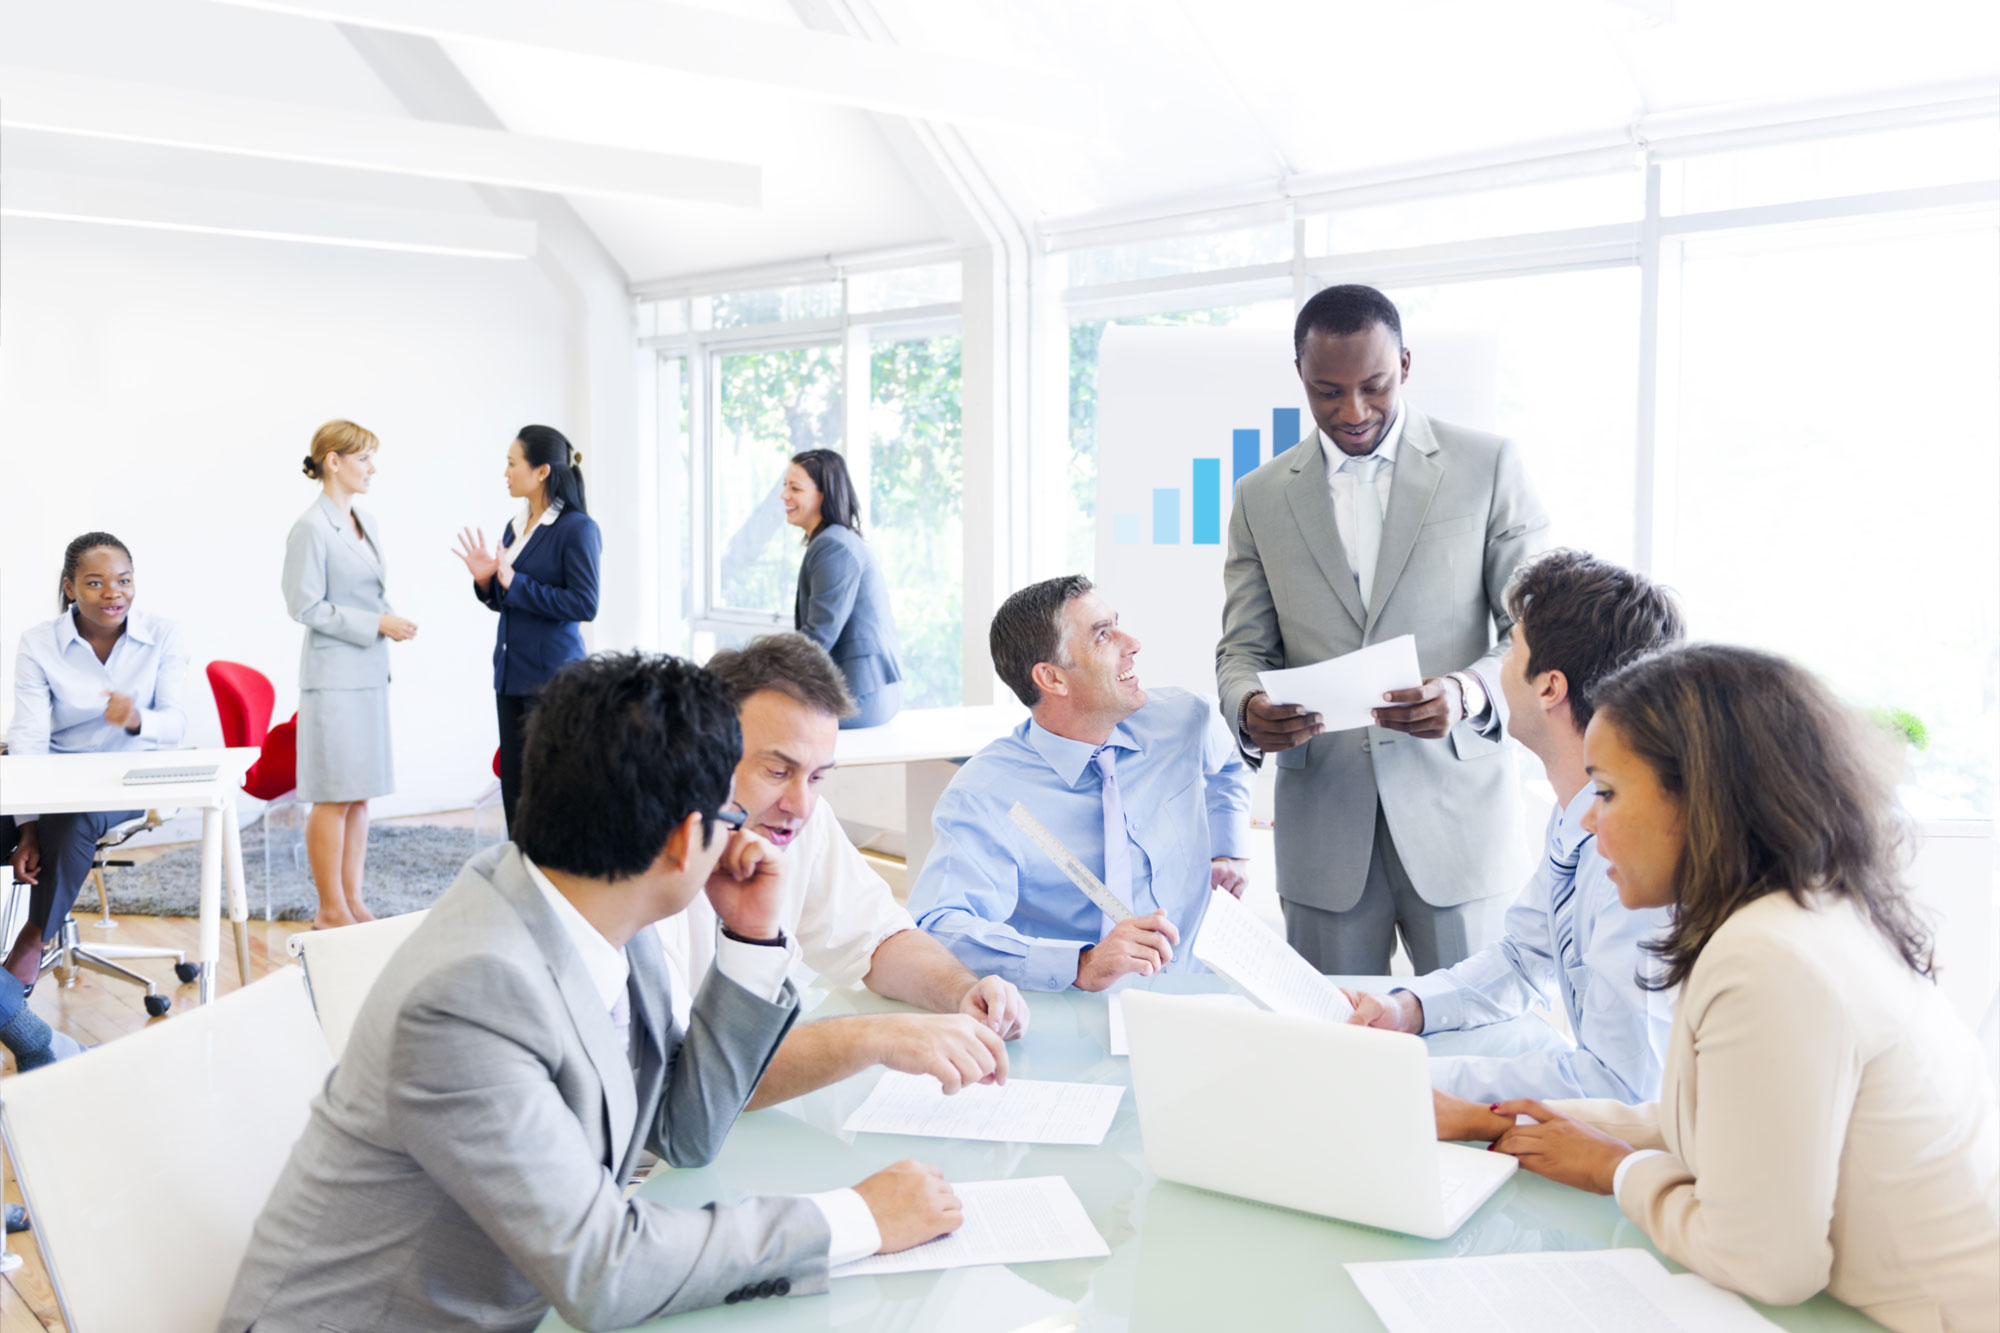 Sales Manager Responsibilities - Your First Goal Is To Know Your People